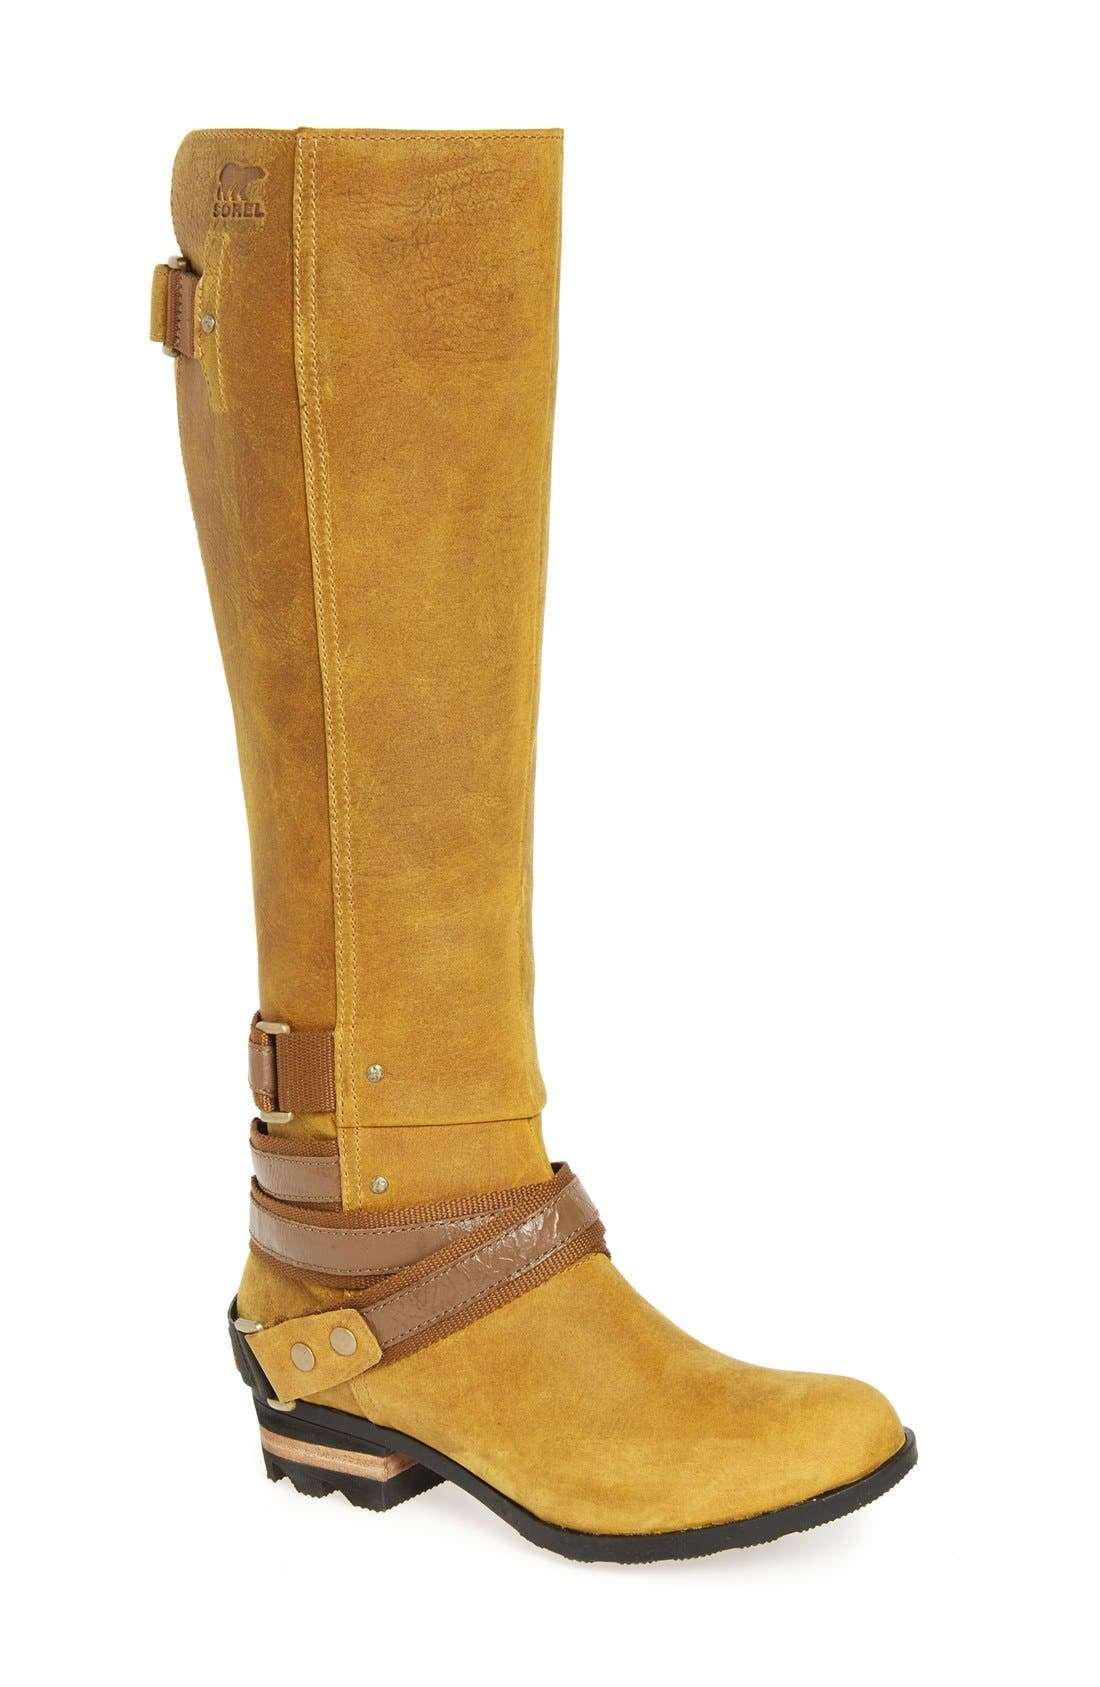 Alternate Image 1 Selected - SOREL Lolla Water Resistant Tall Boot (Women)